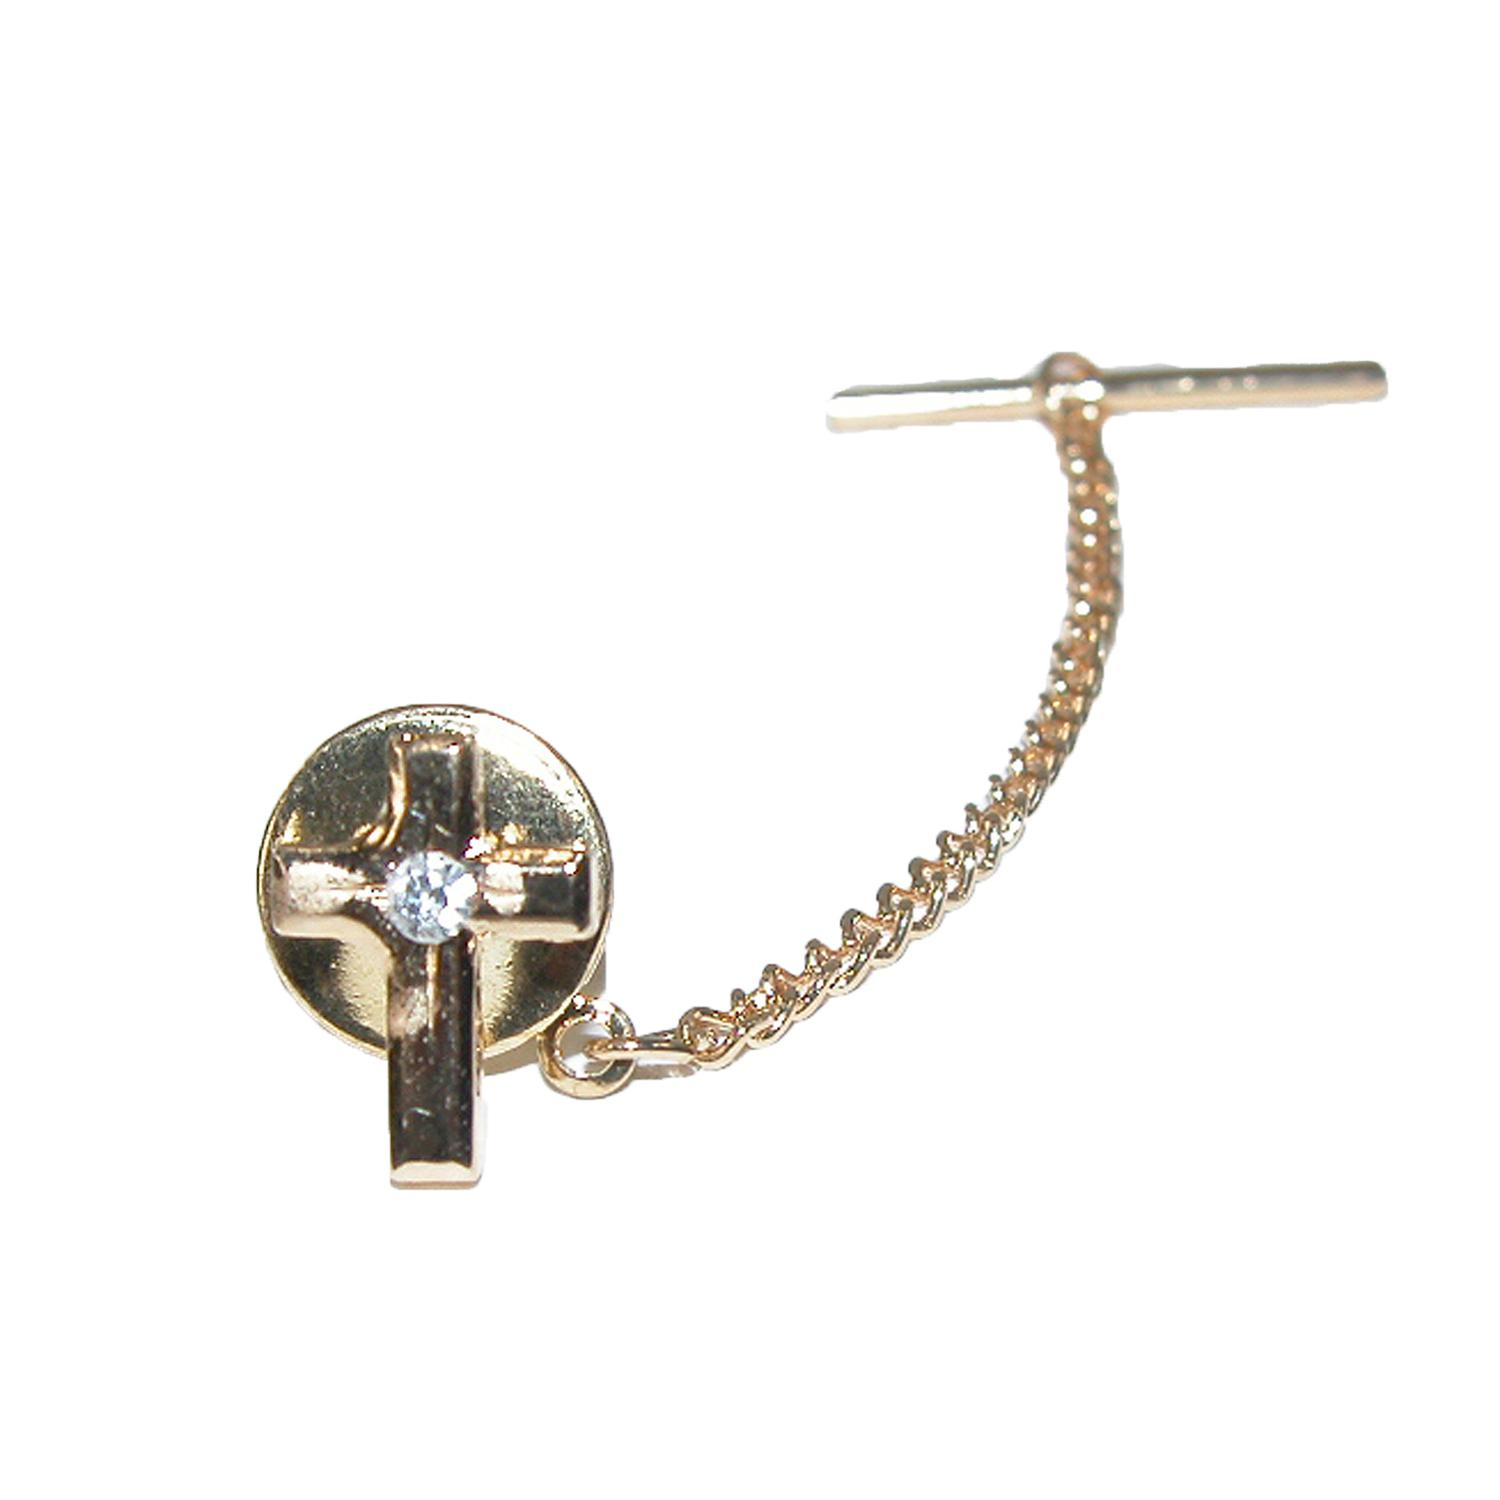 Ctm Mens Cross With Rhinestone Accent Tie Tack Pin